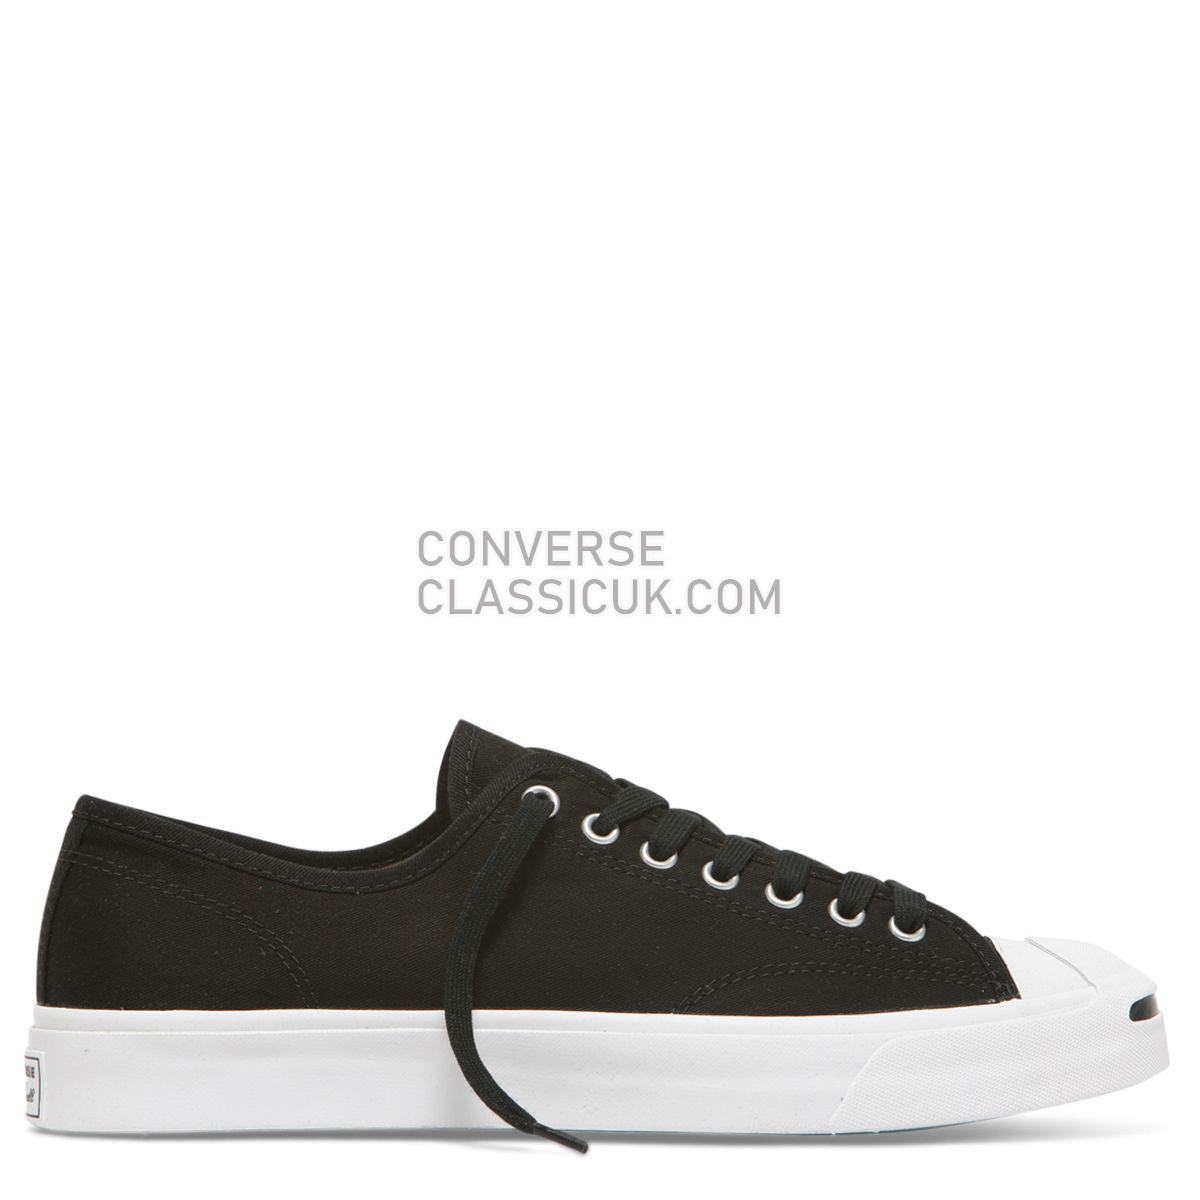 Converse Jack Purcell First In Class Low Top Black Mens 164056 Black/White/Black Shoes